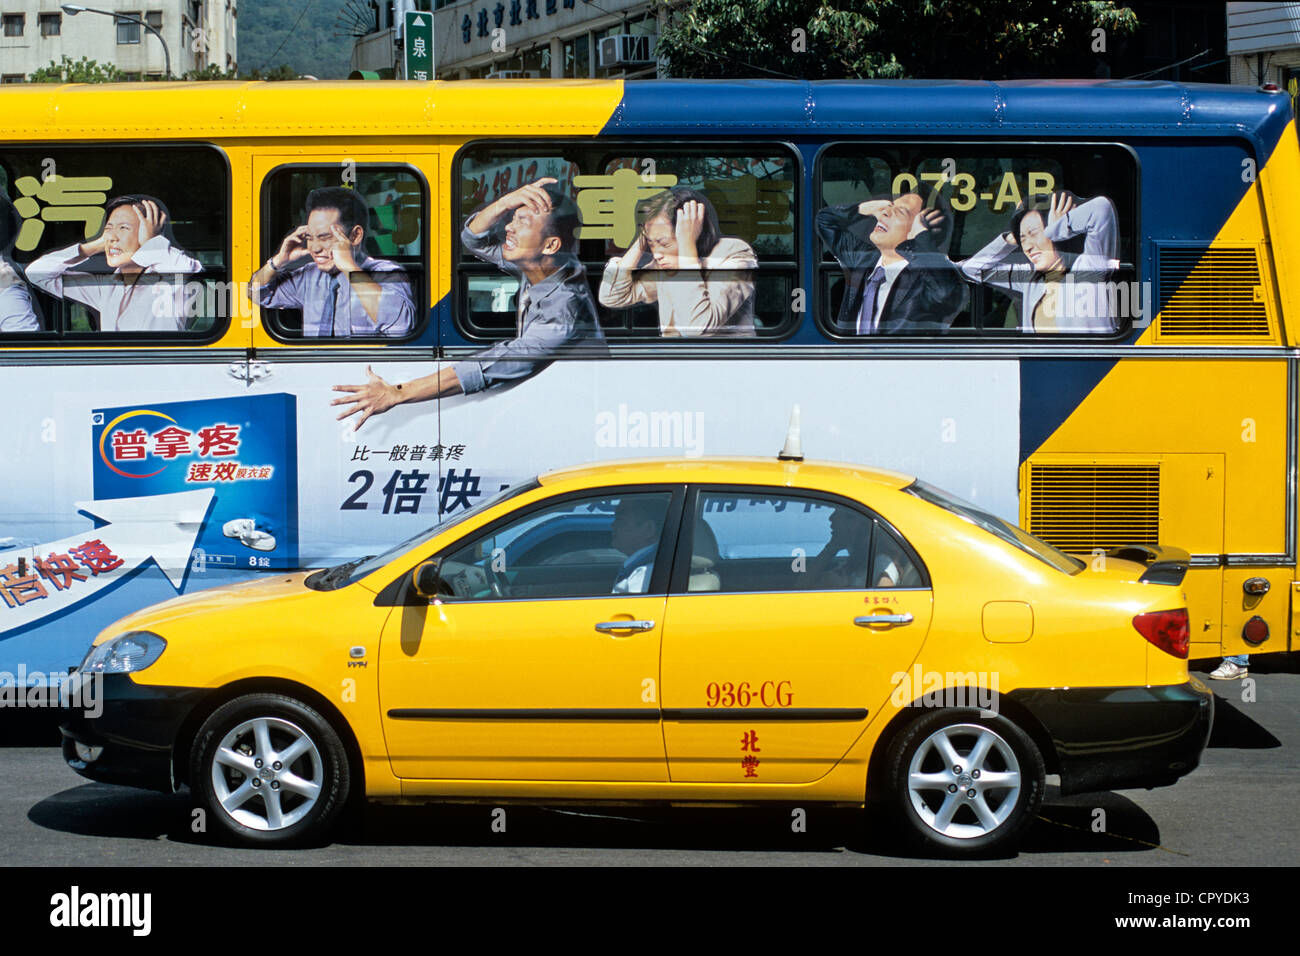 Taiwan, Taipei, taxi et bus inhabituelle au centre-ville Photo Stock